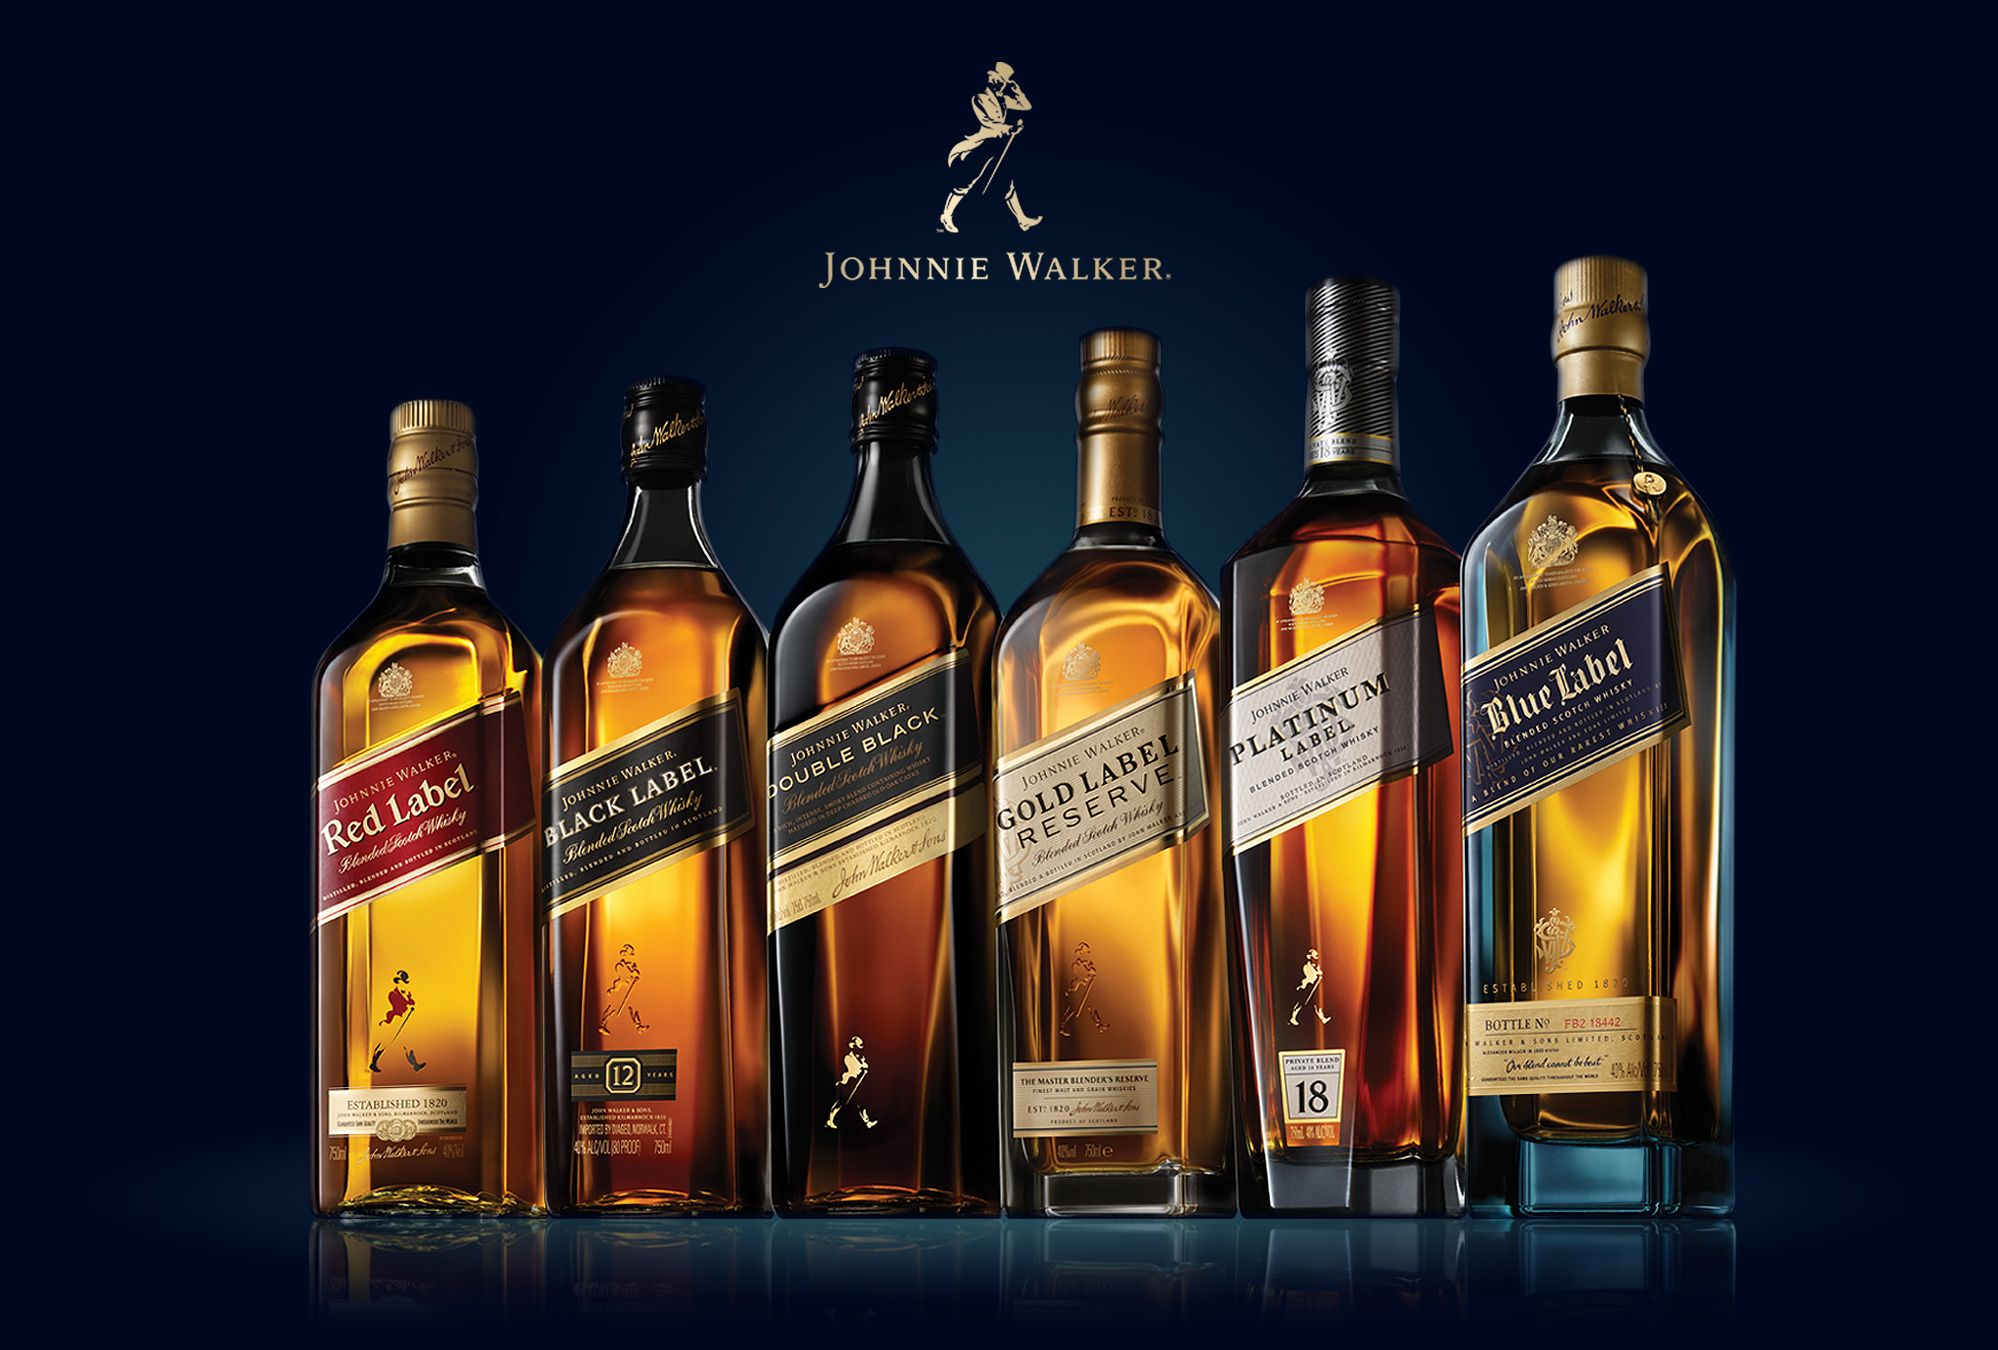 Johnnie Walker black label 700ml, 1l bottle